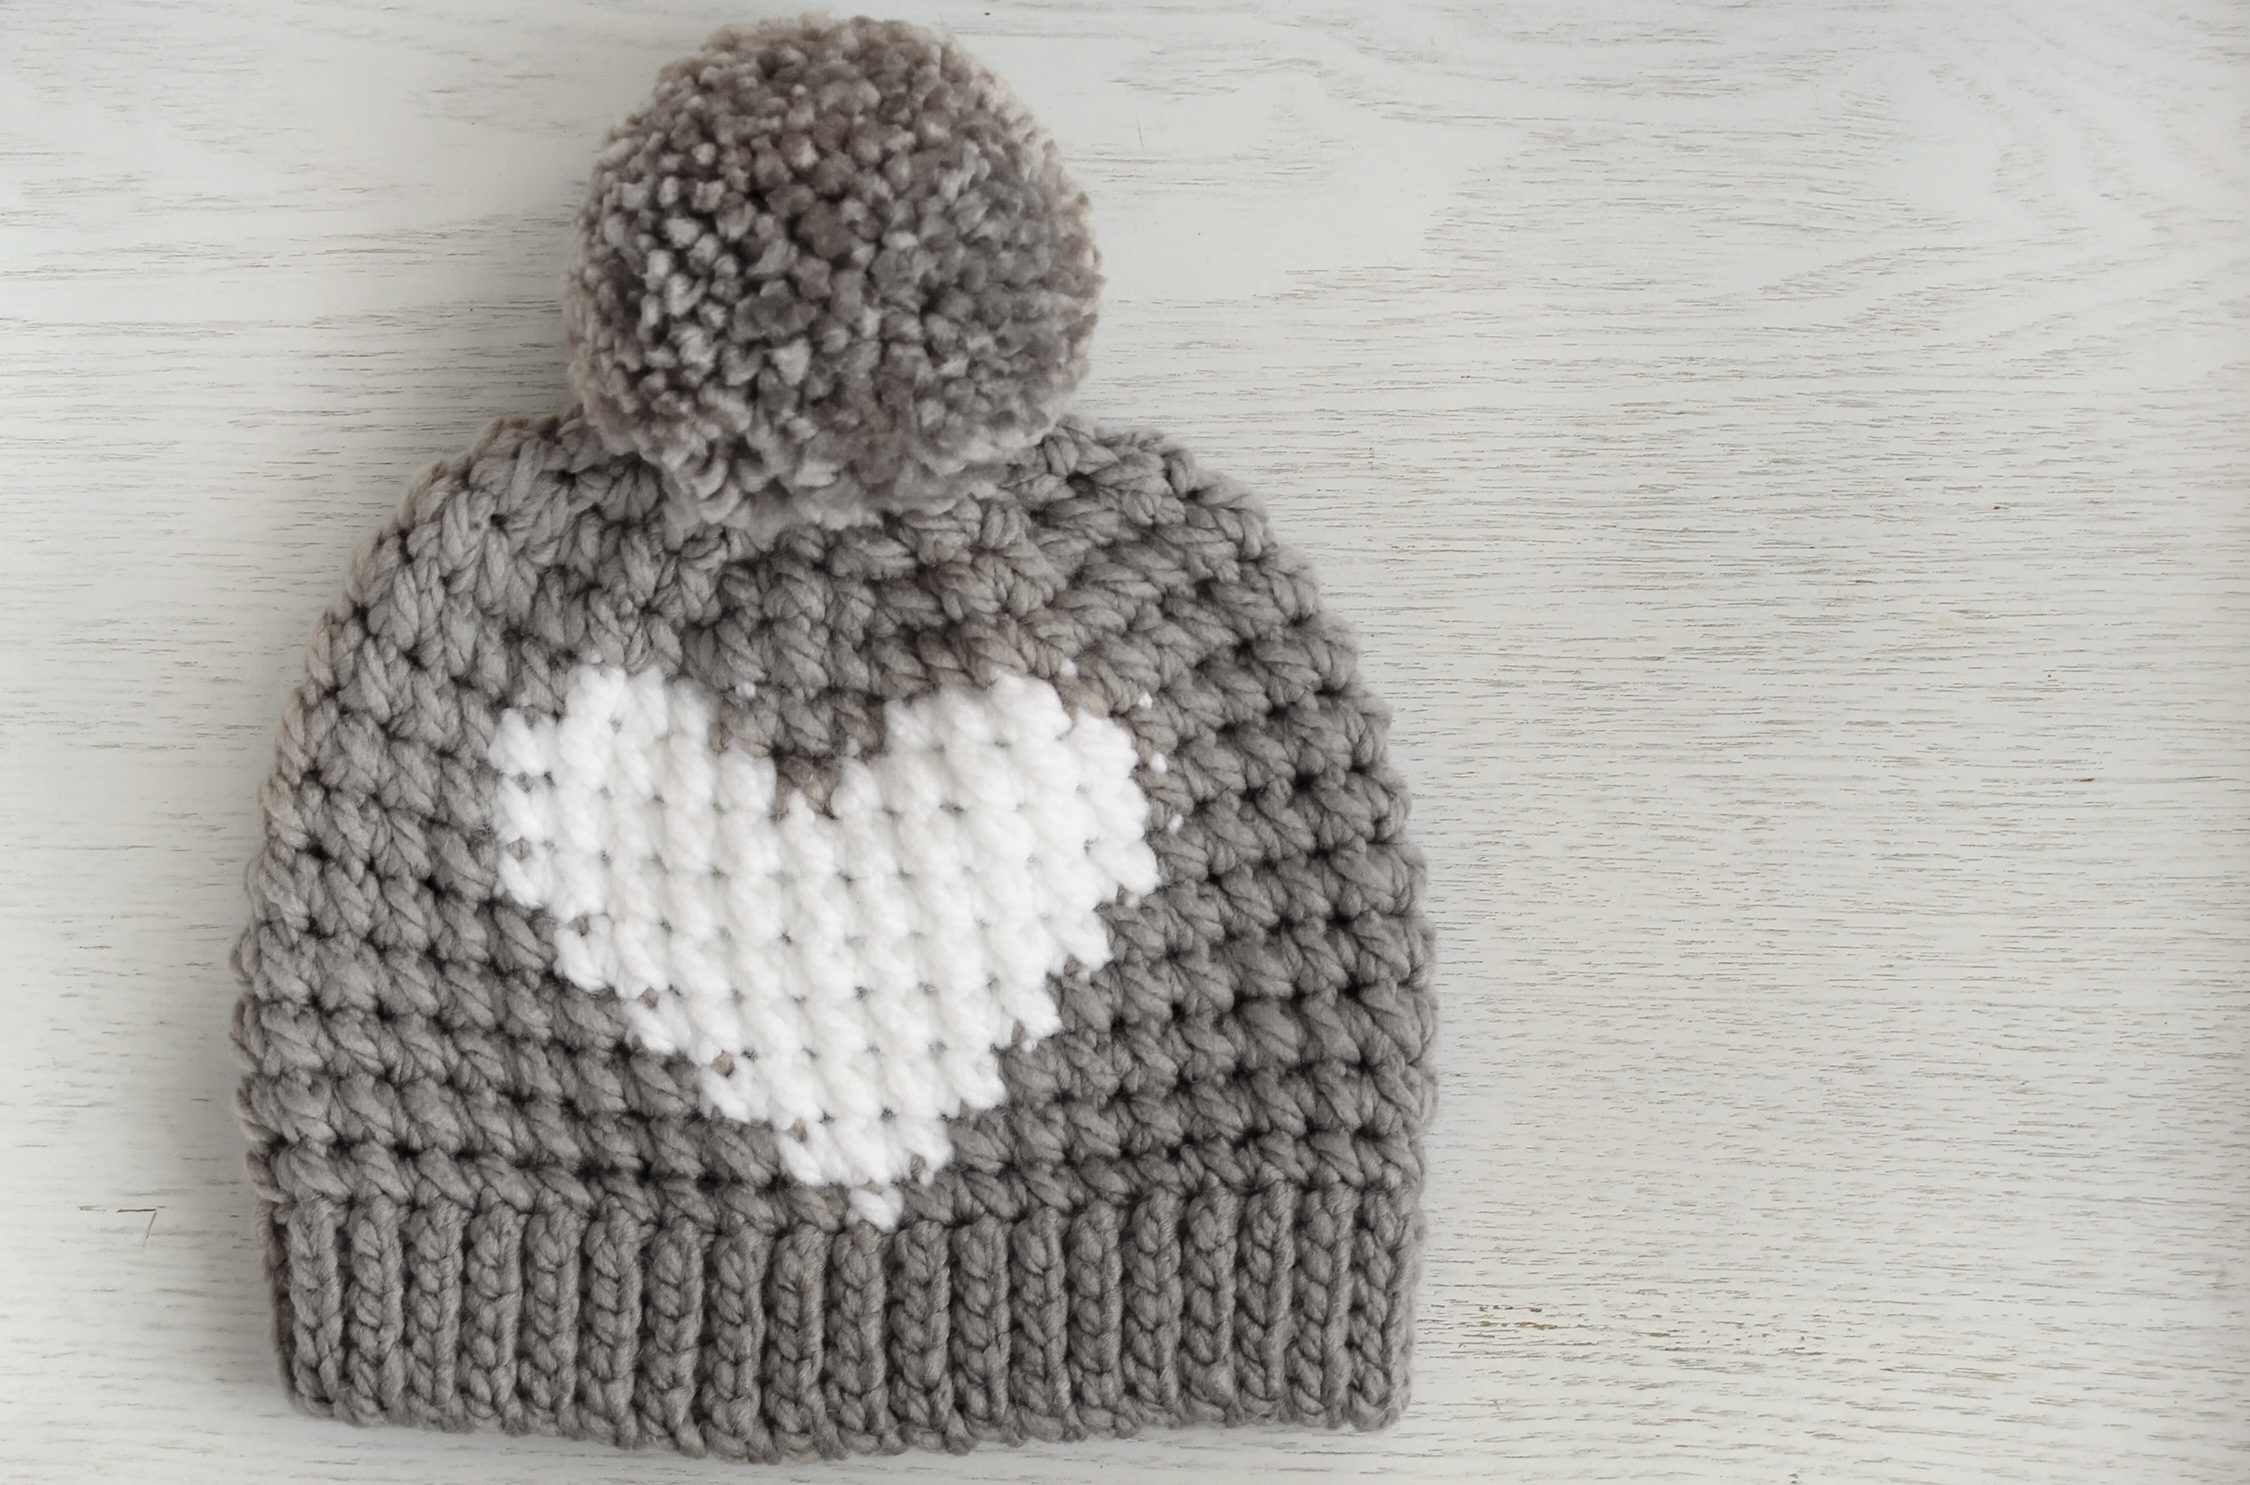 7f94eb5c8cb This simple crocheted heart hat is my most requested crochet pattern  design! I m thrilled to finally be sharing it – for FREE! Inspired by my  collaboration ...